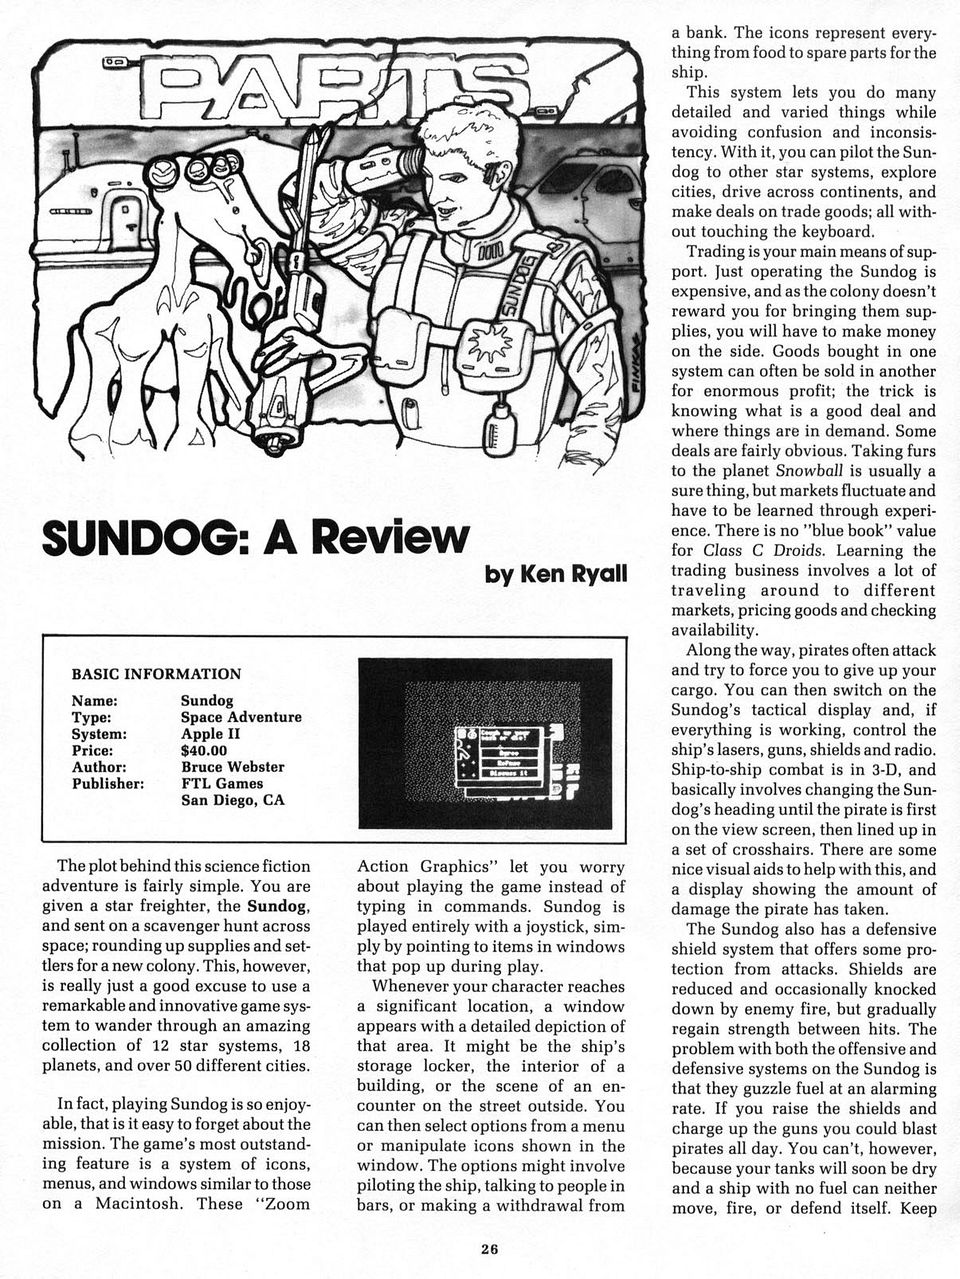 Sundog: A Review